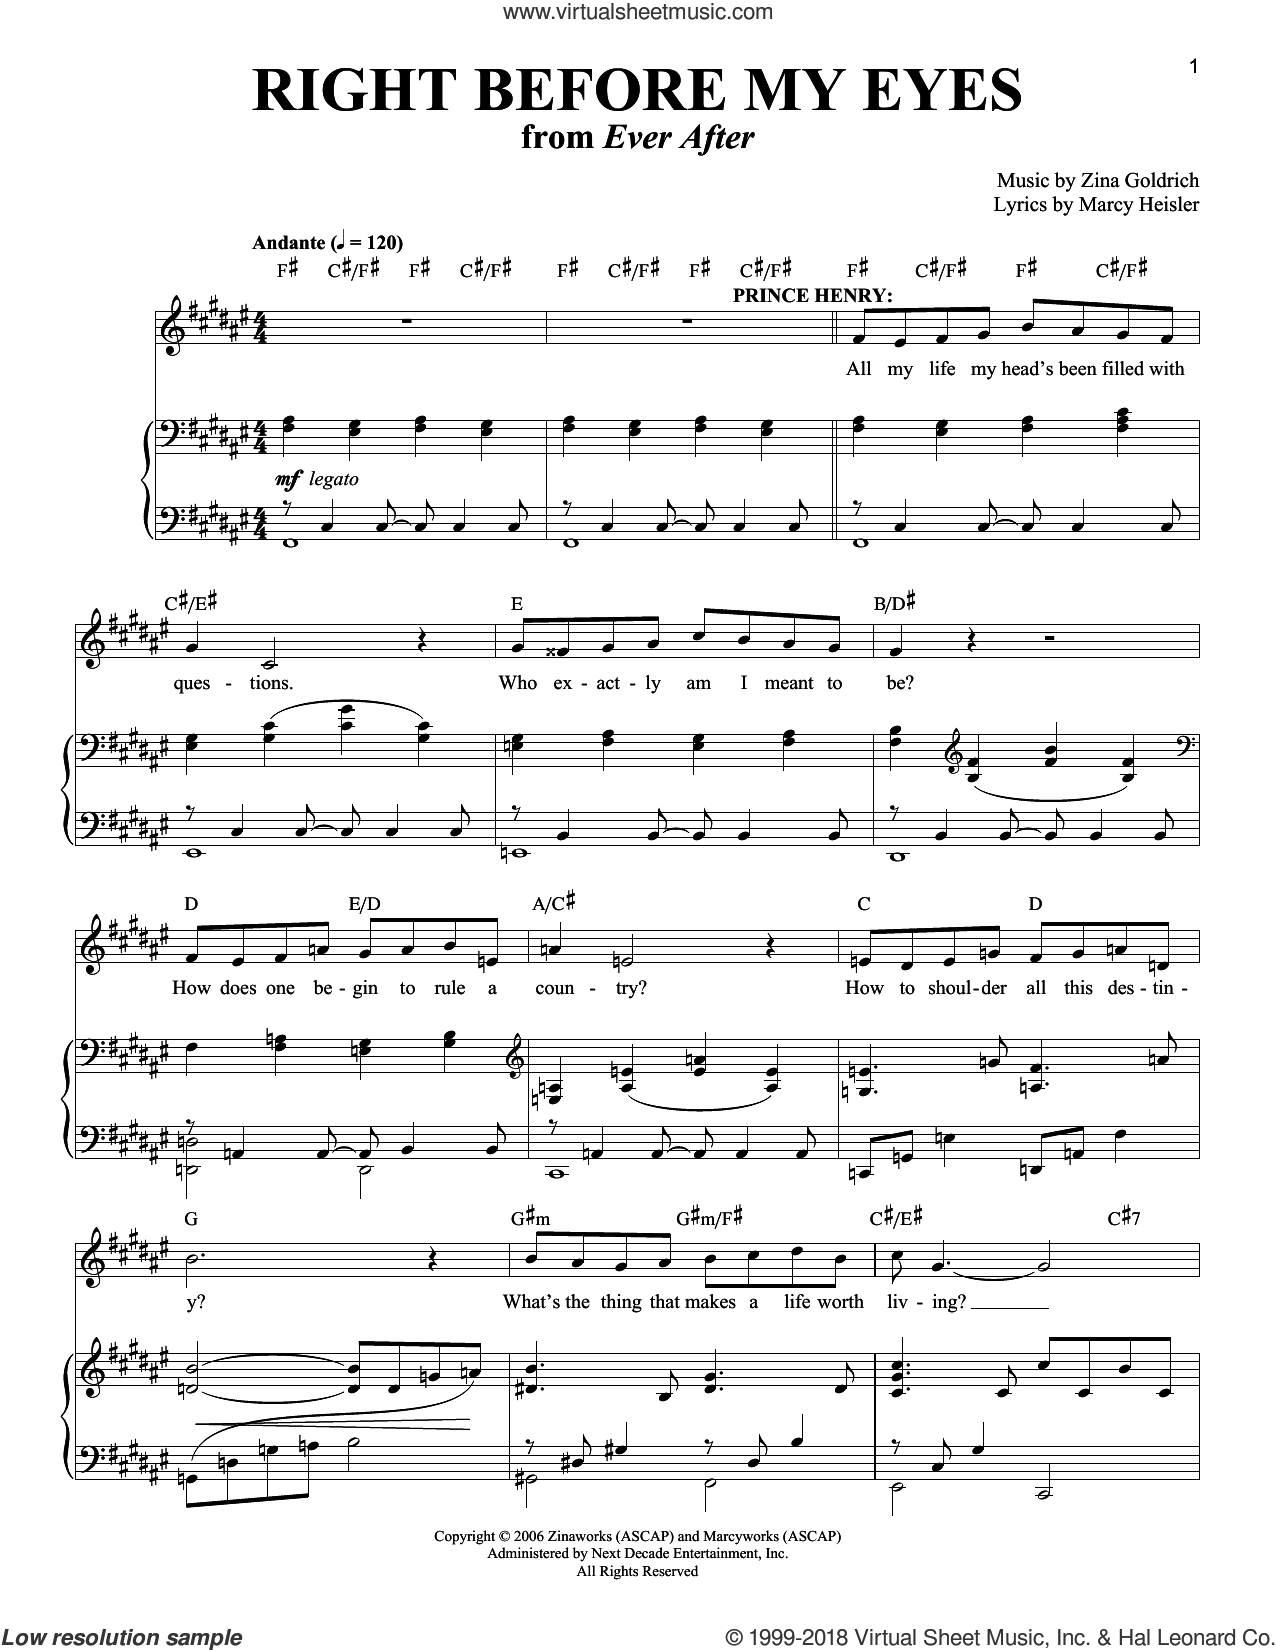 Right Before My Eyes sheet music for voice and piano by Goldrich & Heisler. Score Image Preview.